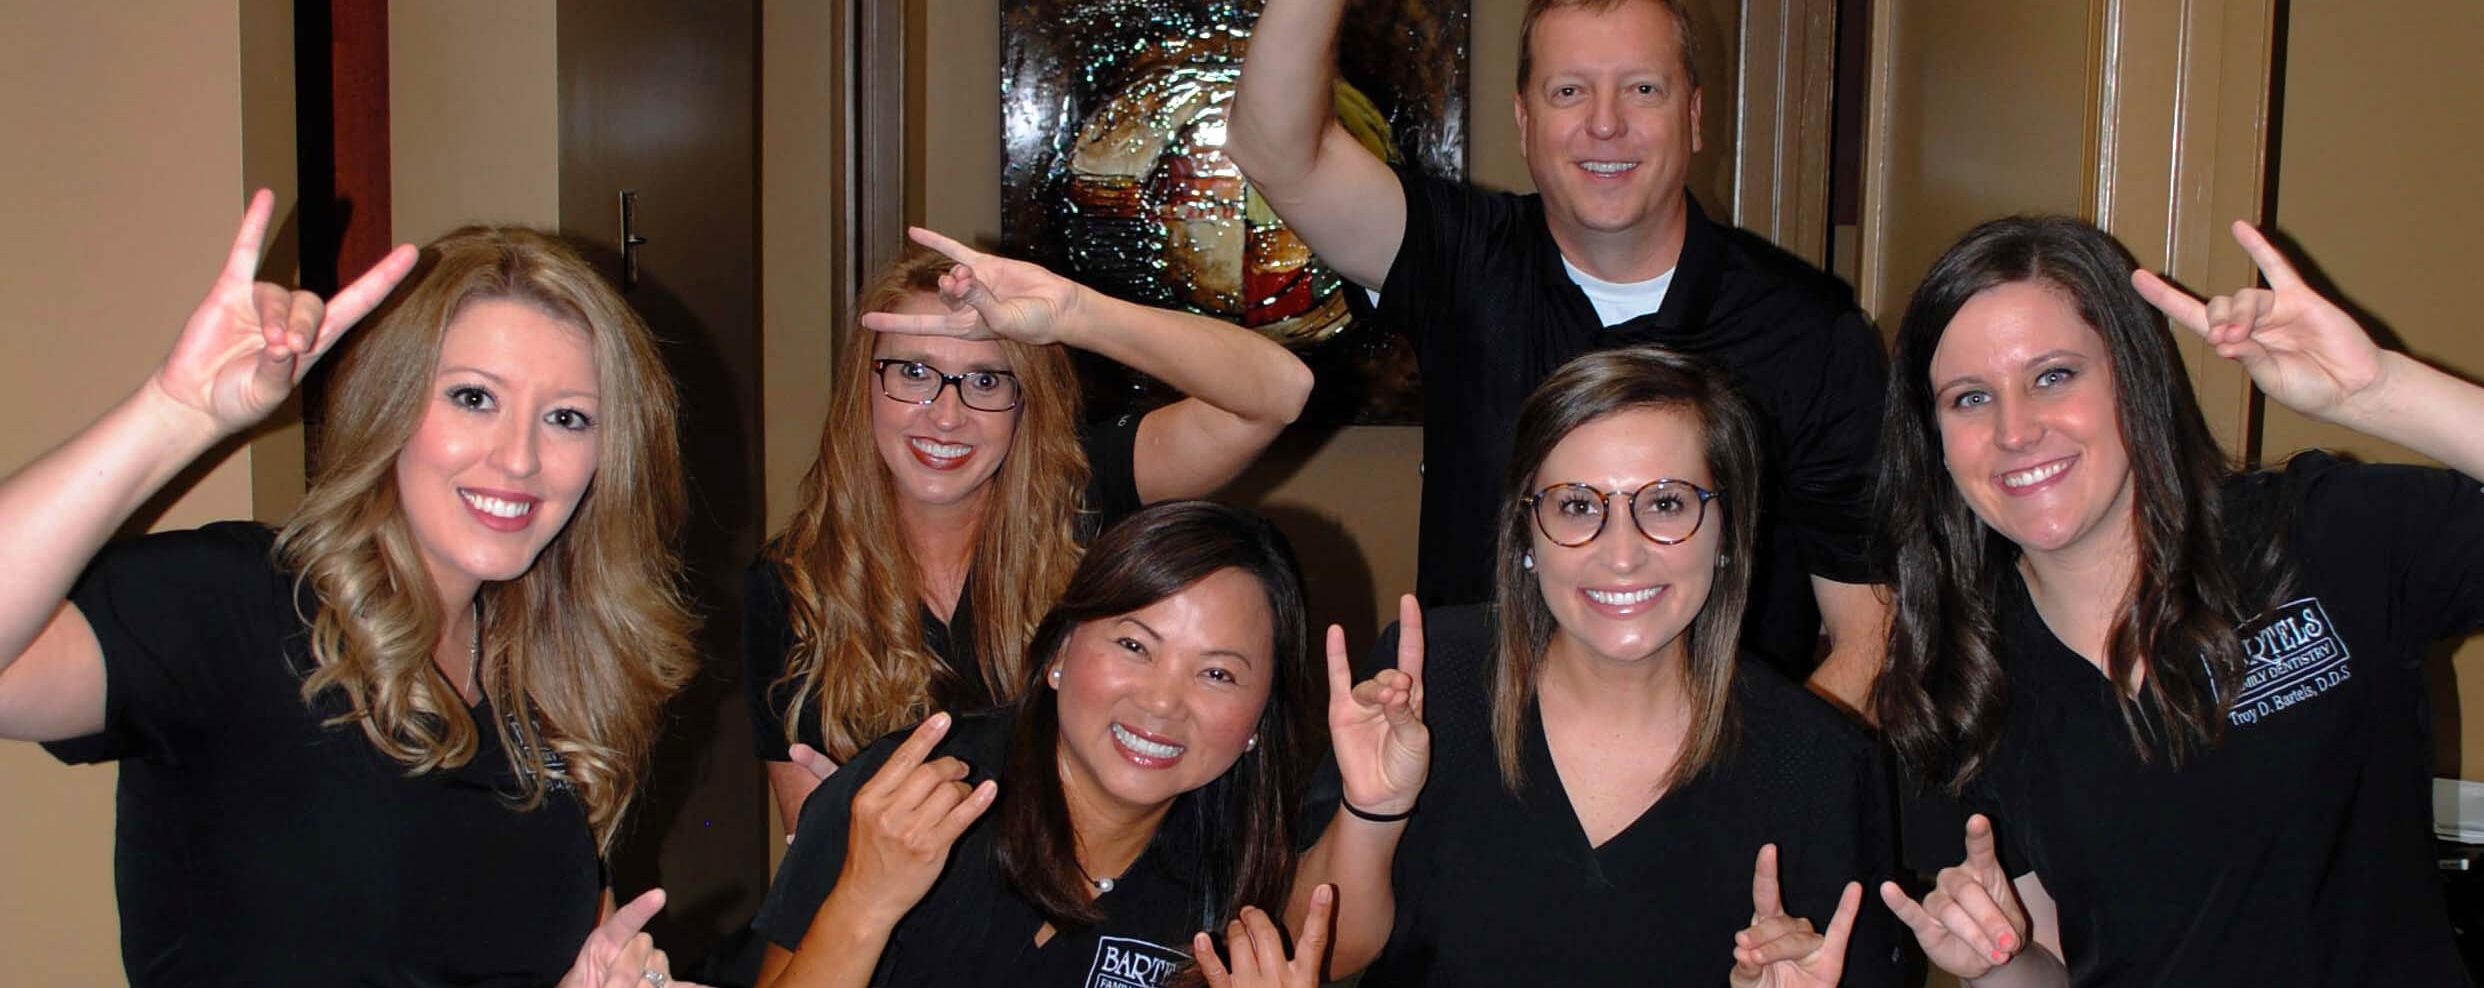 Bartels Family Dentistry showing off their smiles